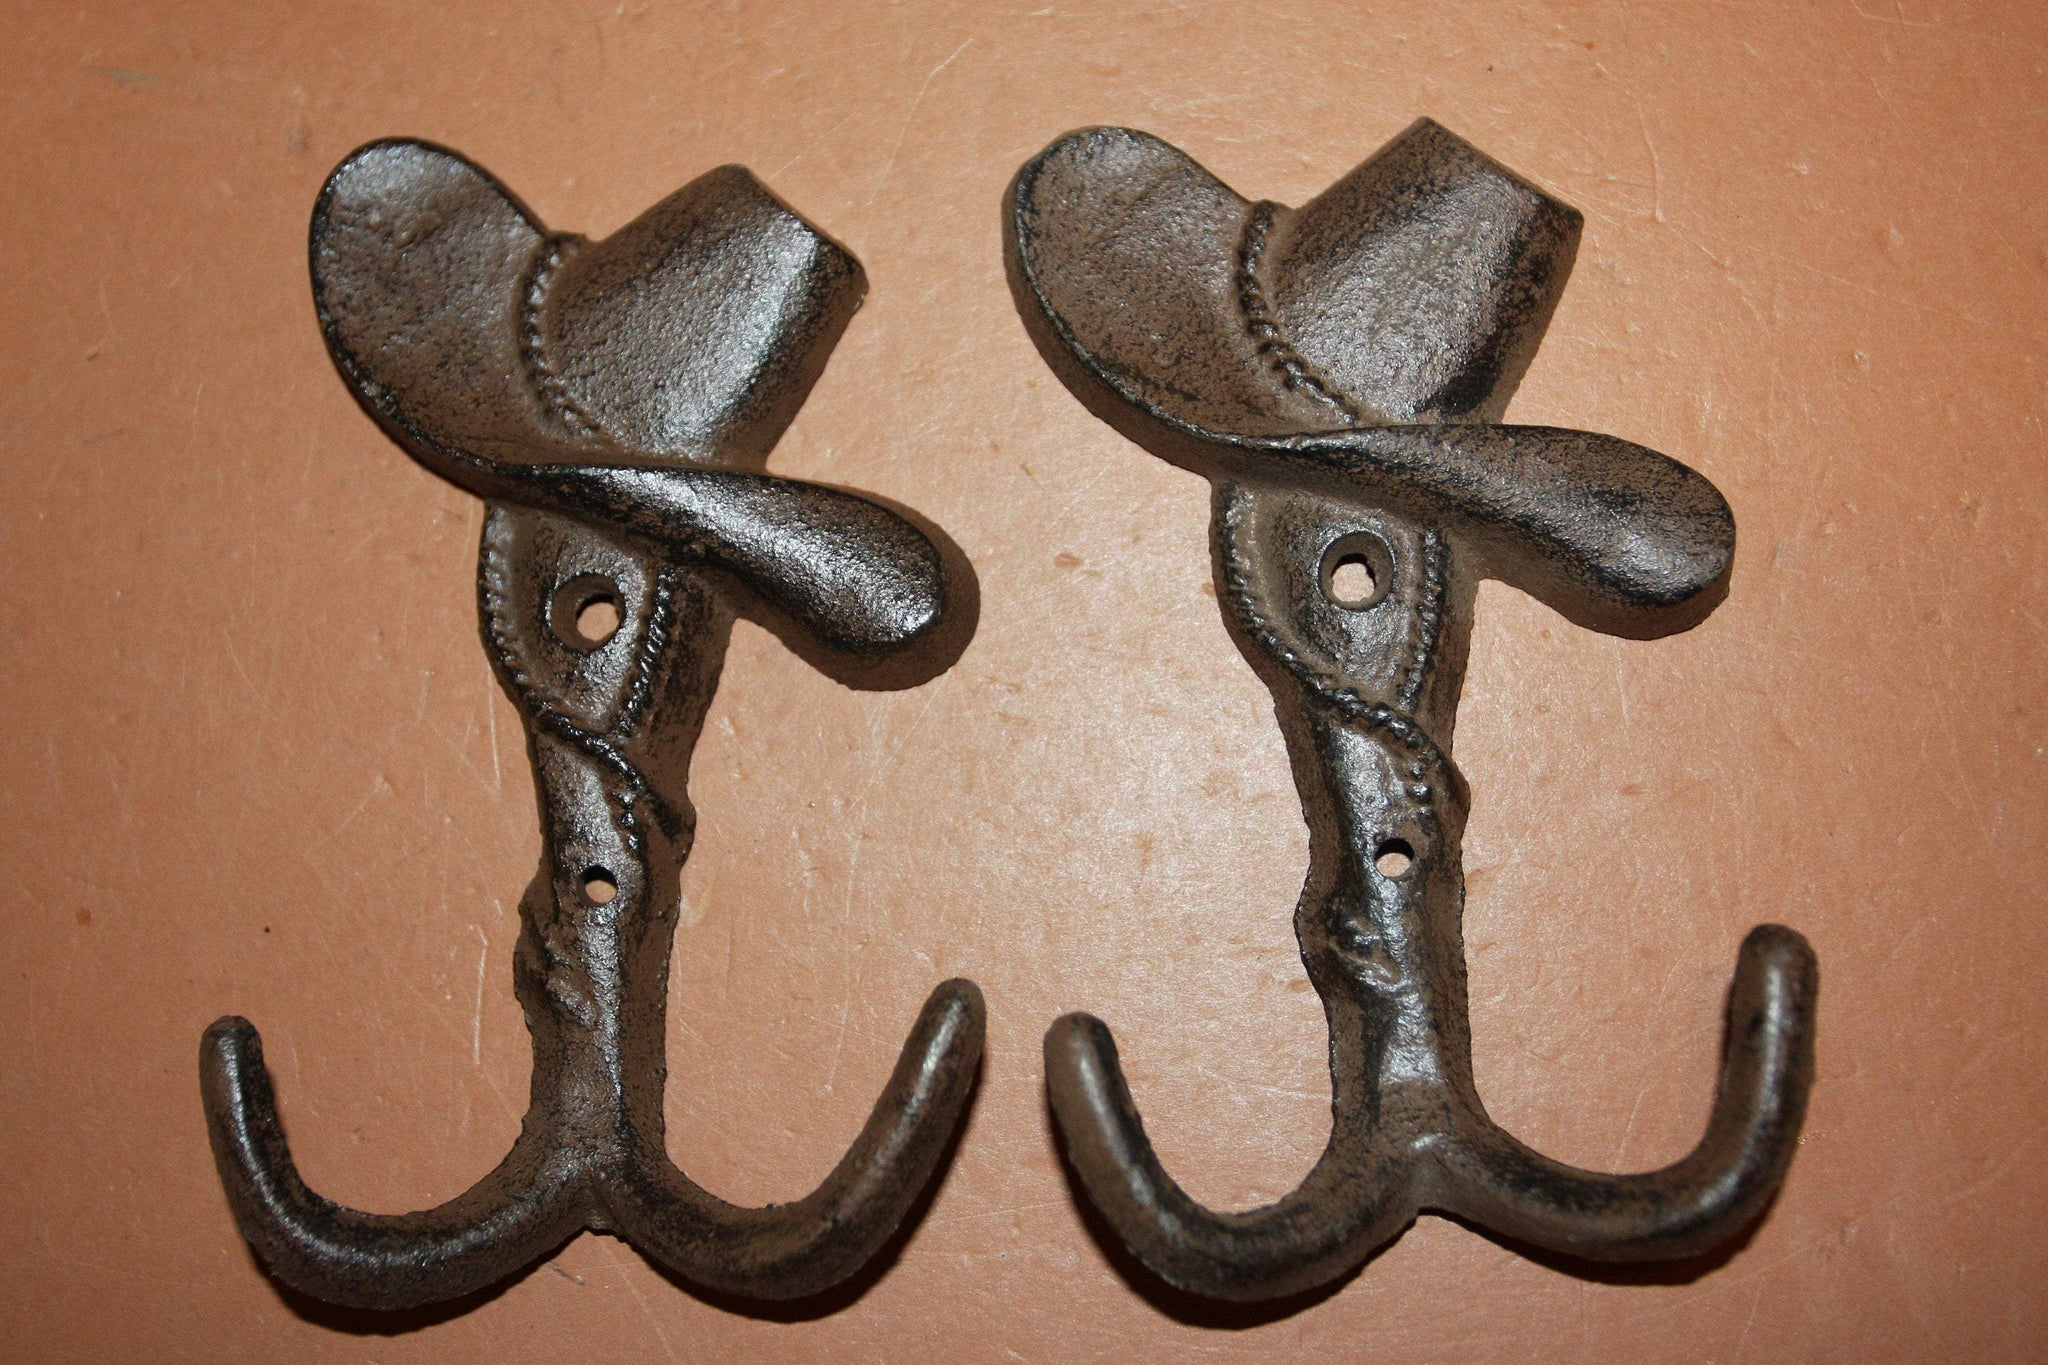 Cowboy Towel Hooks Cast Iron 4 7/8 inch Volume Priced, W-6